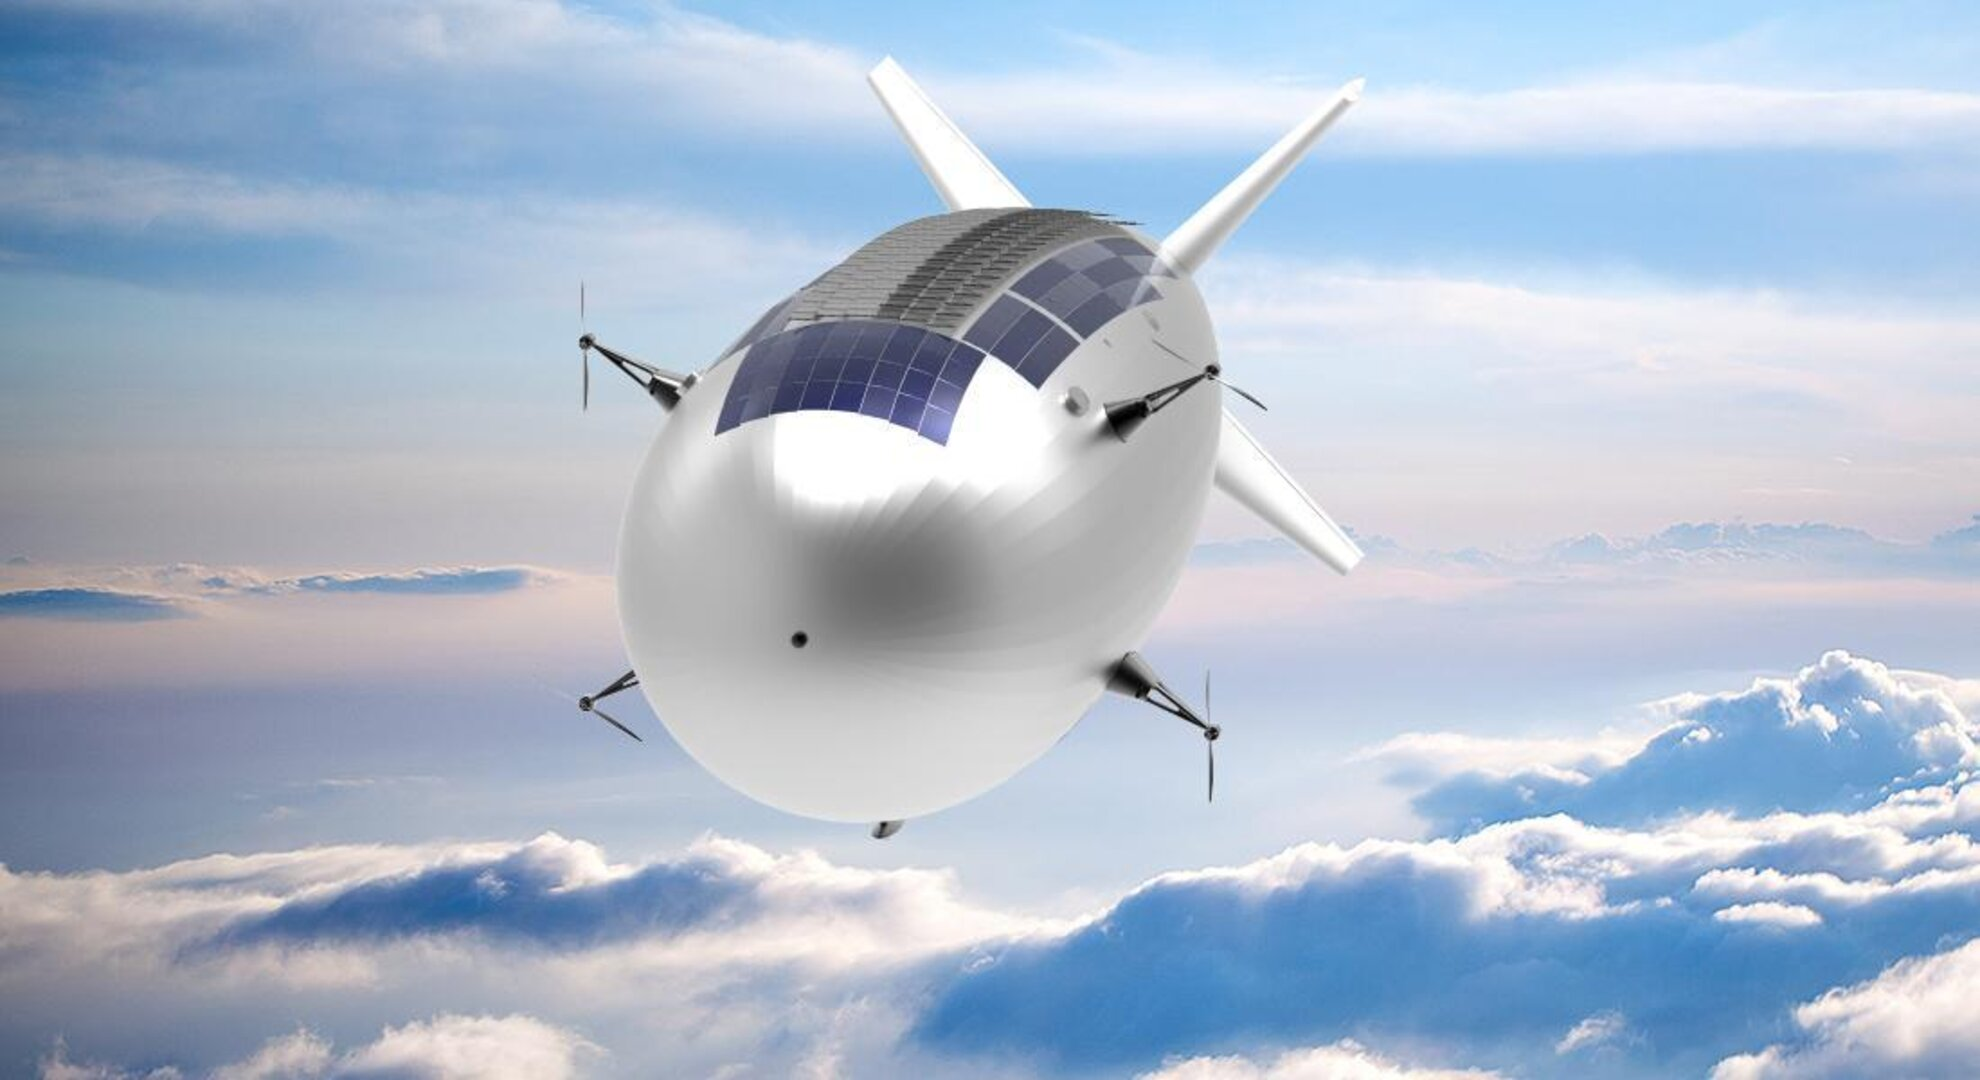 Thales Alenia Space's Stratobus airship, an example of an aerostatic HAPS platform.